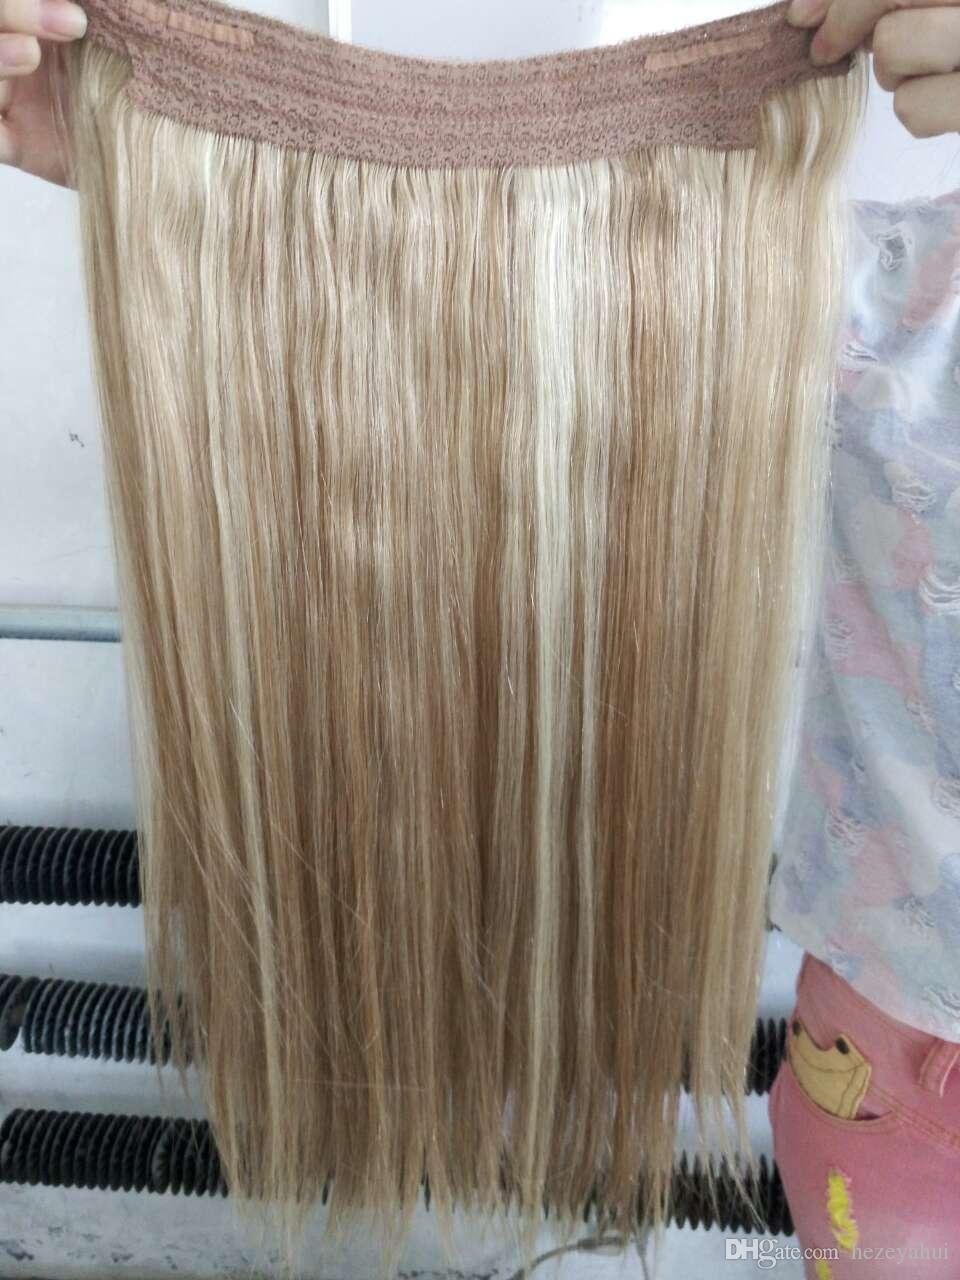 Cheap double drawn indian remy hair no clips halo flip in hair double drawn indian remy hair no clips halo flip in hair extension easy fish line human hair weaving blonde mixed color 27613 pmusecretfo Image collections